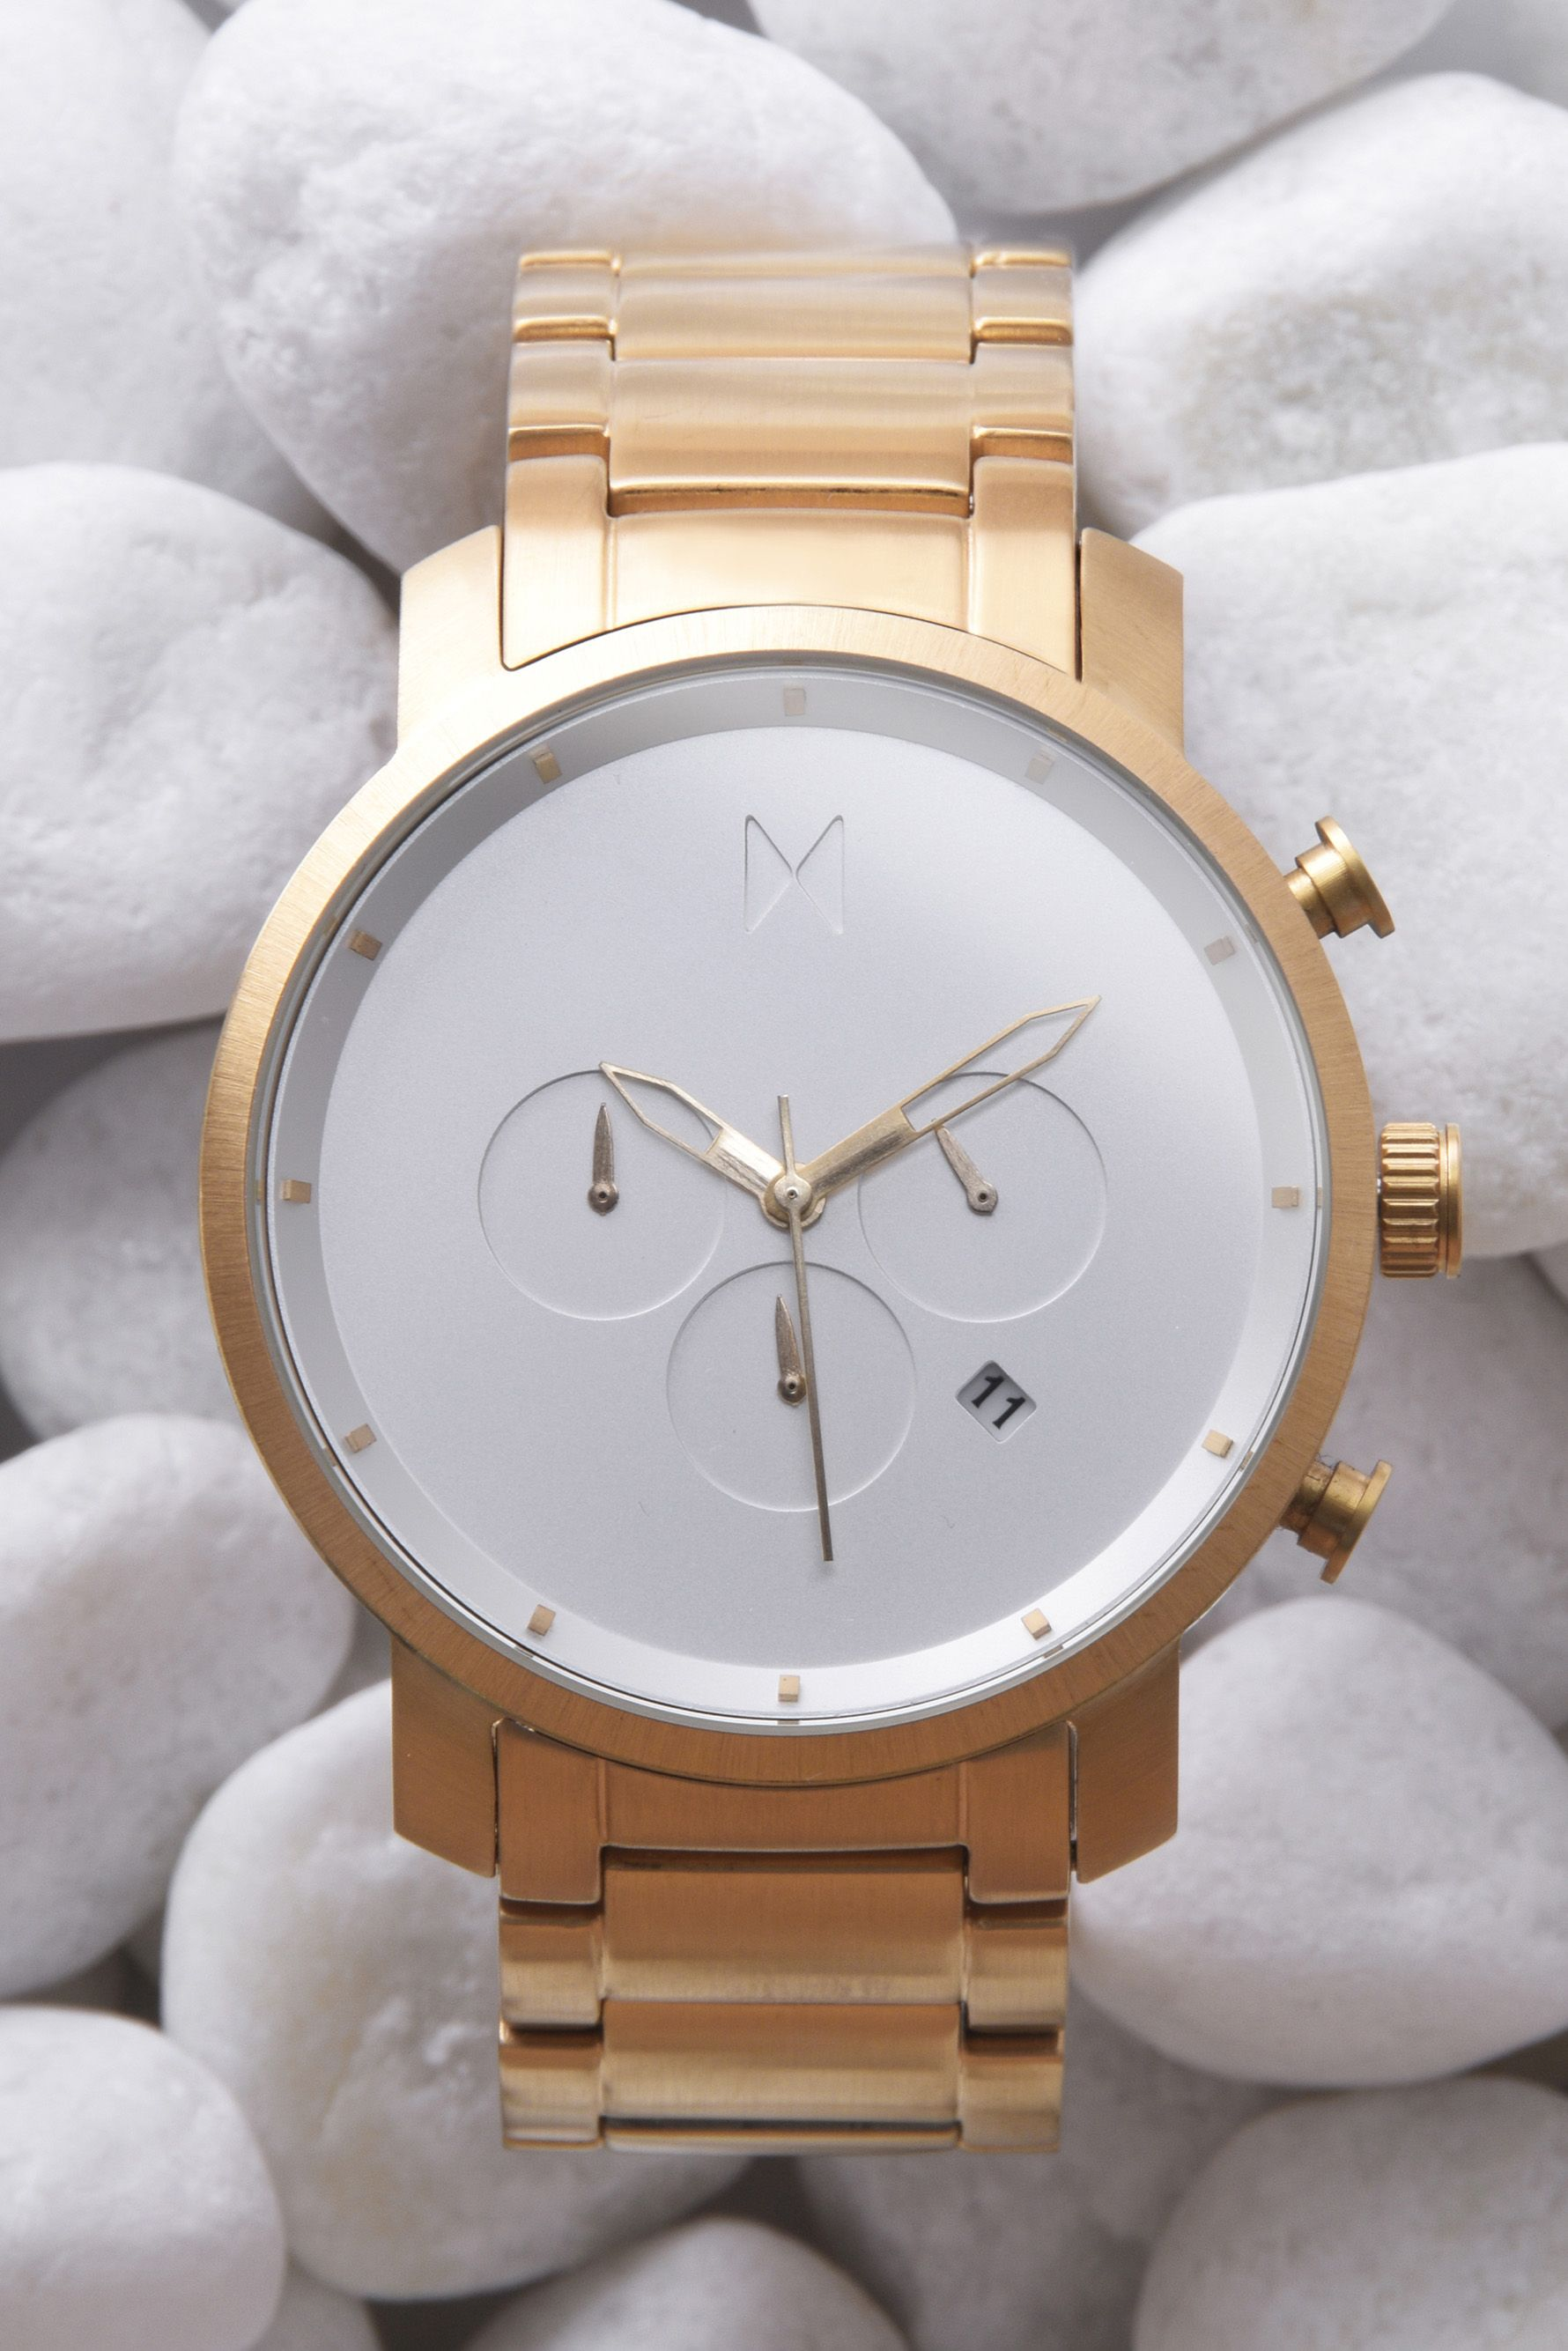 Want to really make him happy this V-day? Get him a watch he'll love.